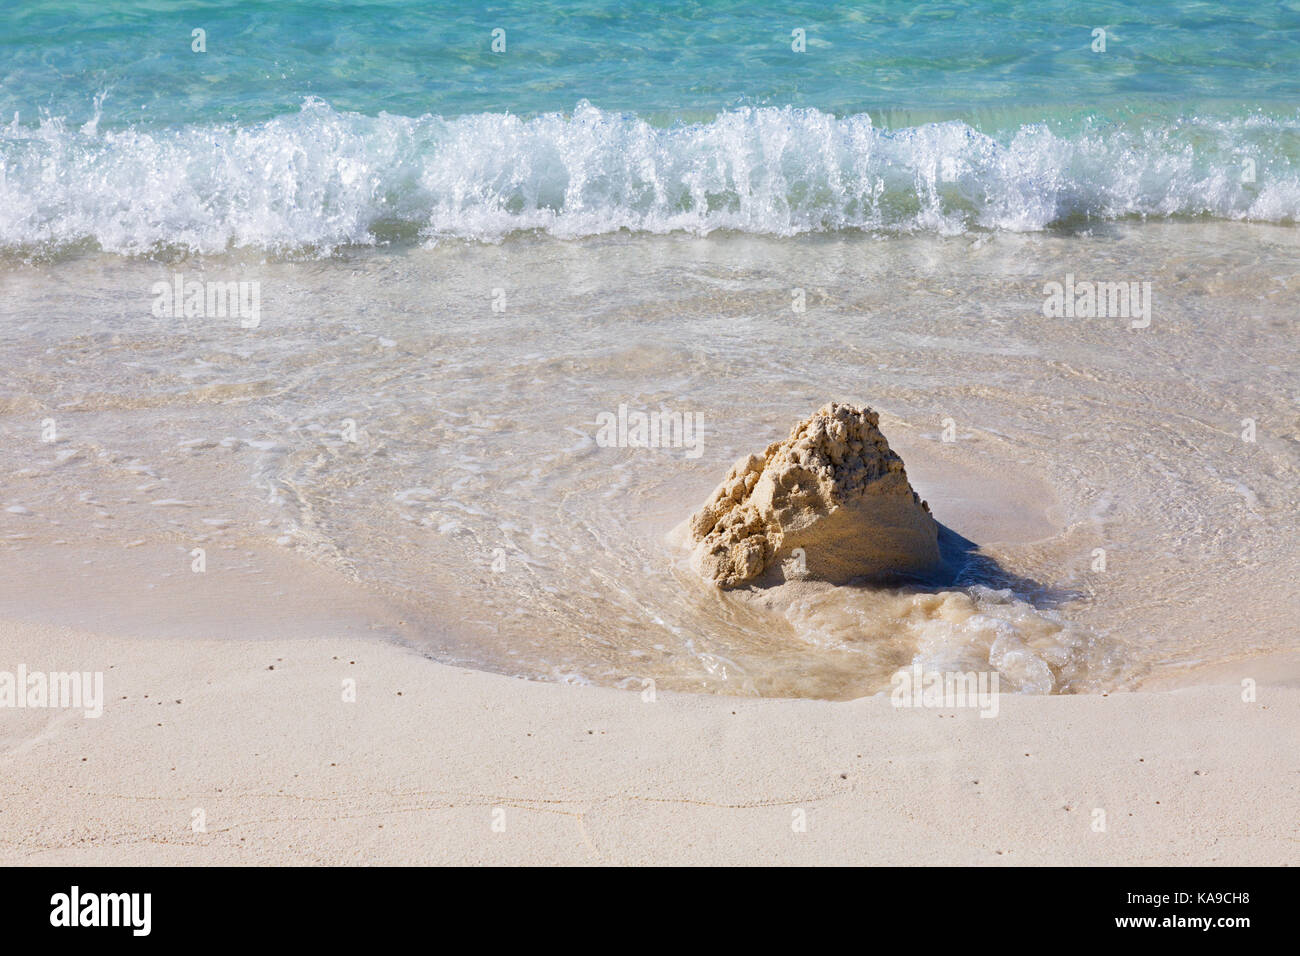 Sandcastle on the beach being washed away by the waves - concept of inevitability, time, temporary, - the Maldives, - Stock Image